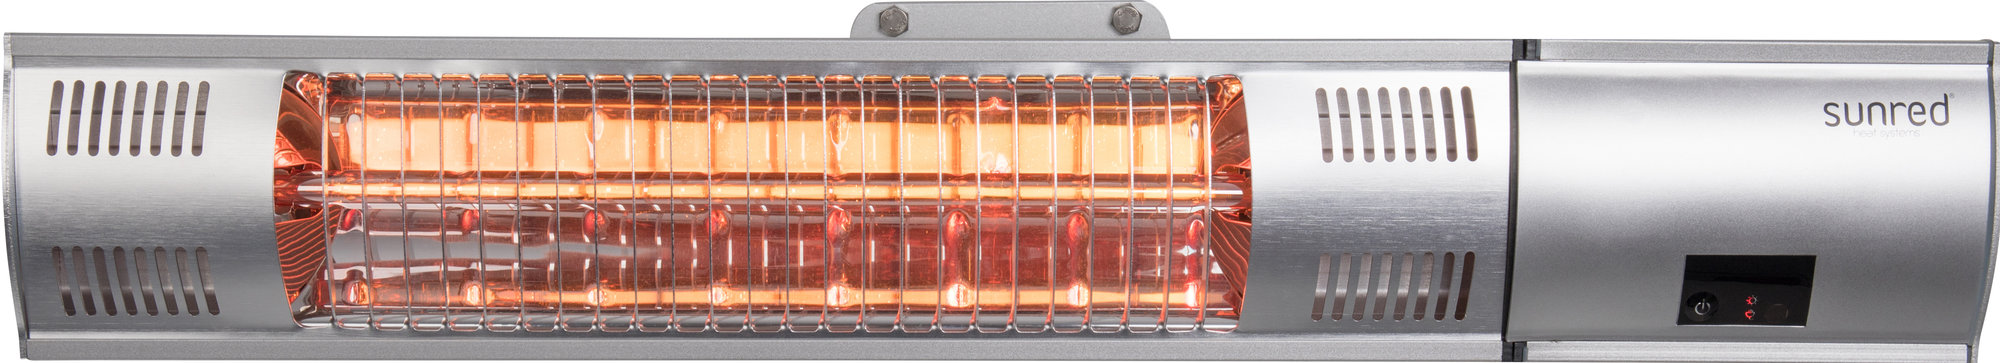 Sunred Royal Diamond Silver wandheater